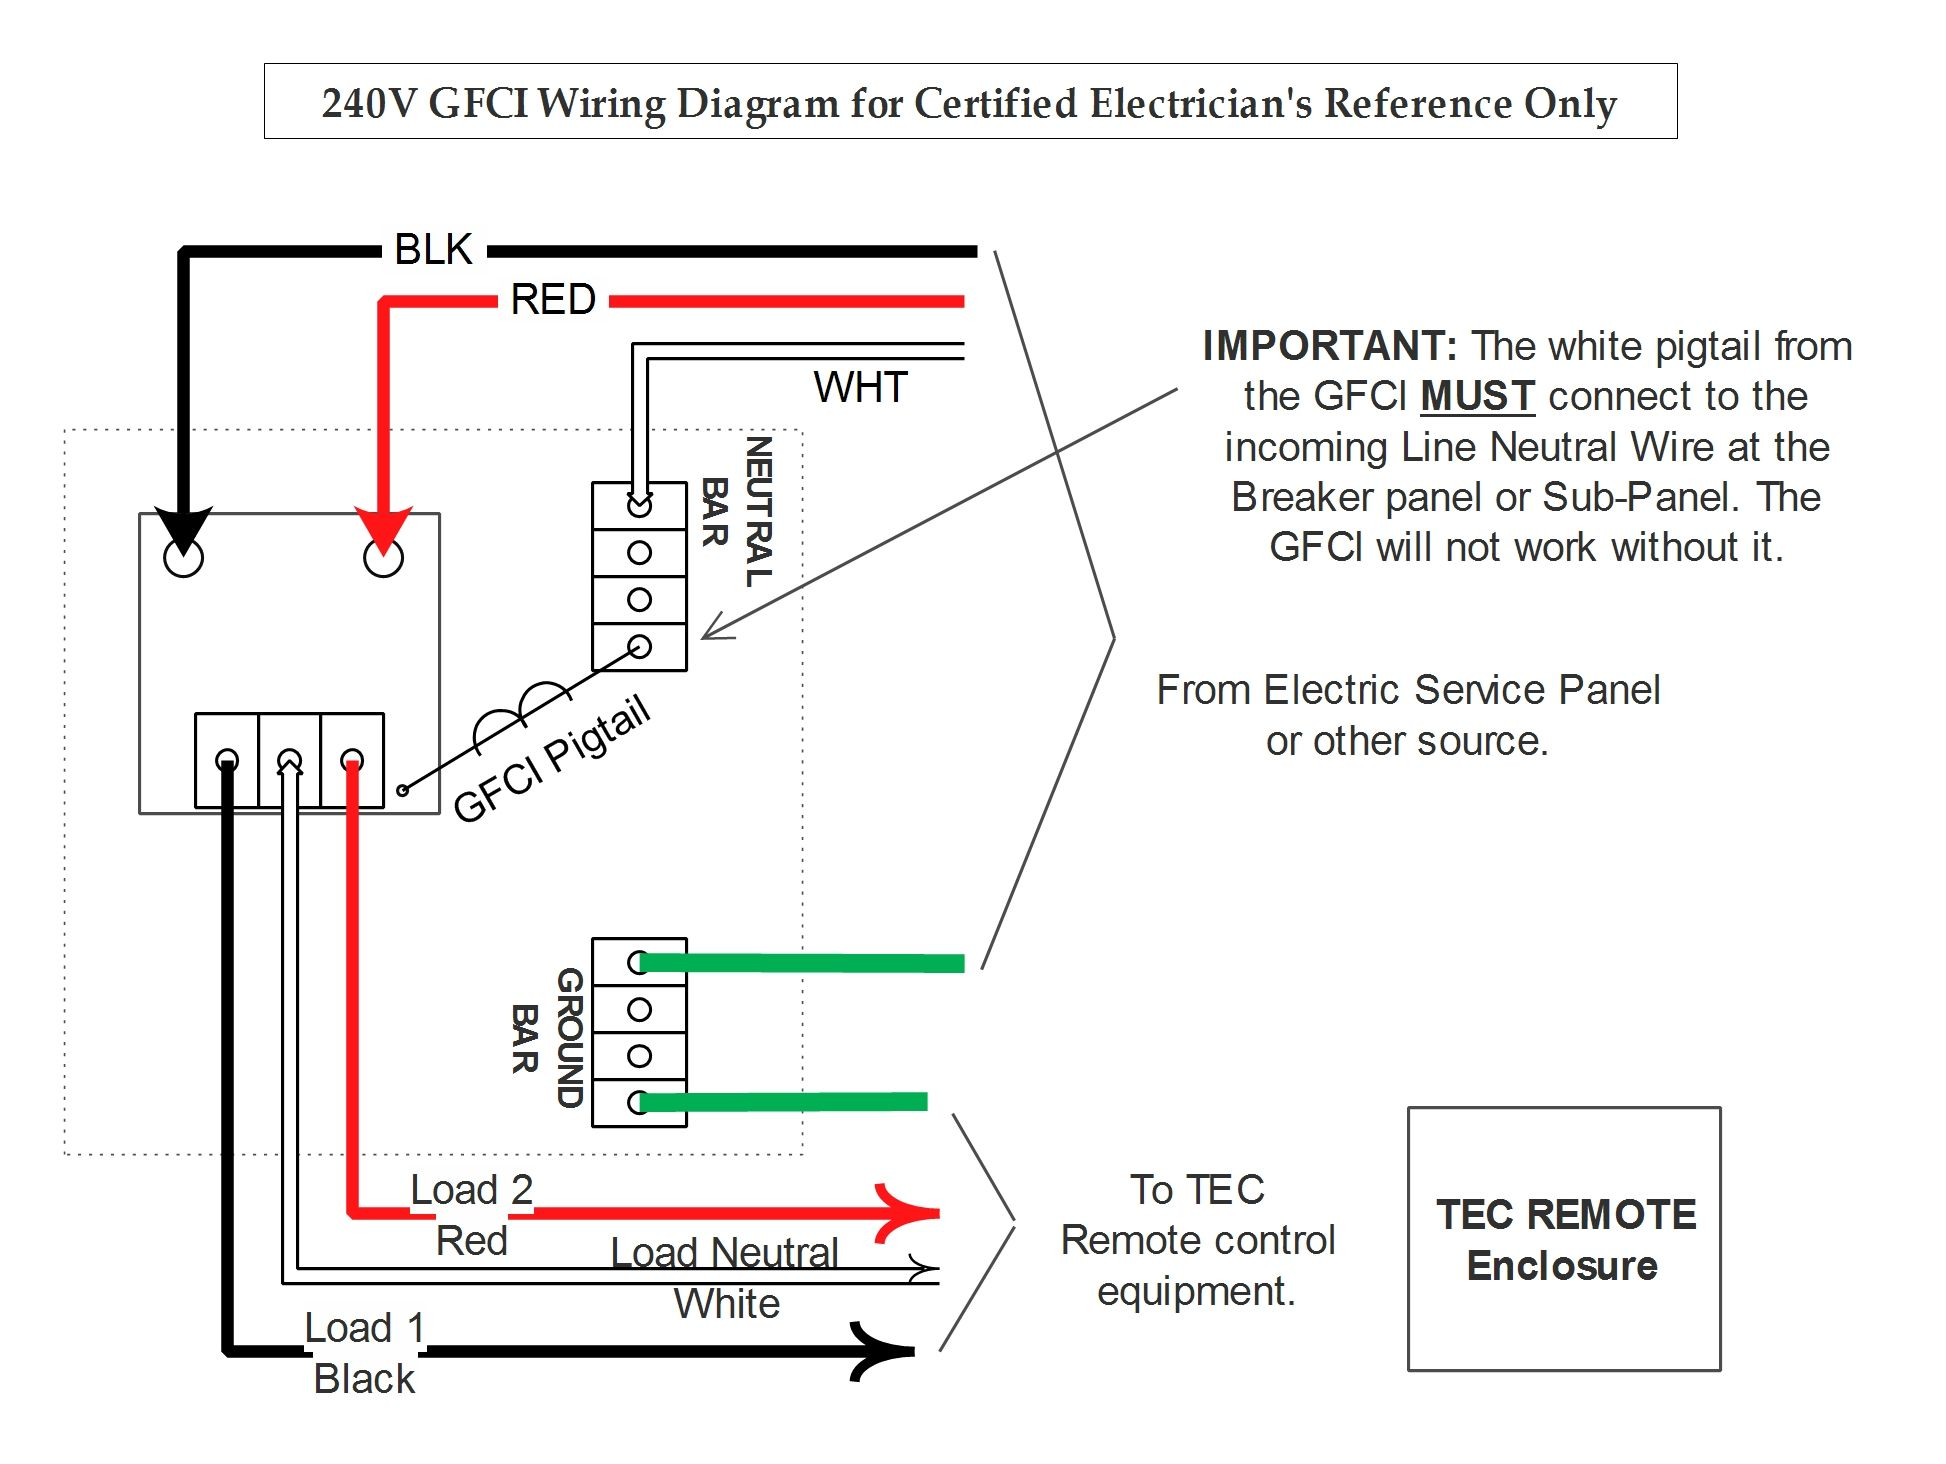 GFCI 240 Wiring wiring & installation pigtail wiring diagram at bakdesigns.co